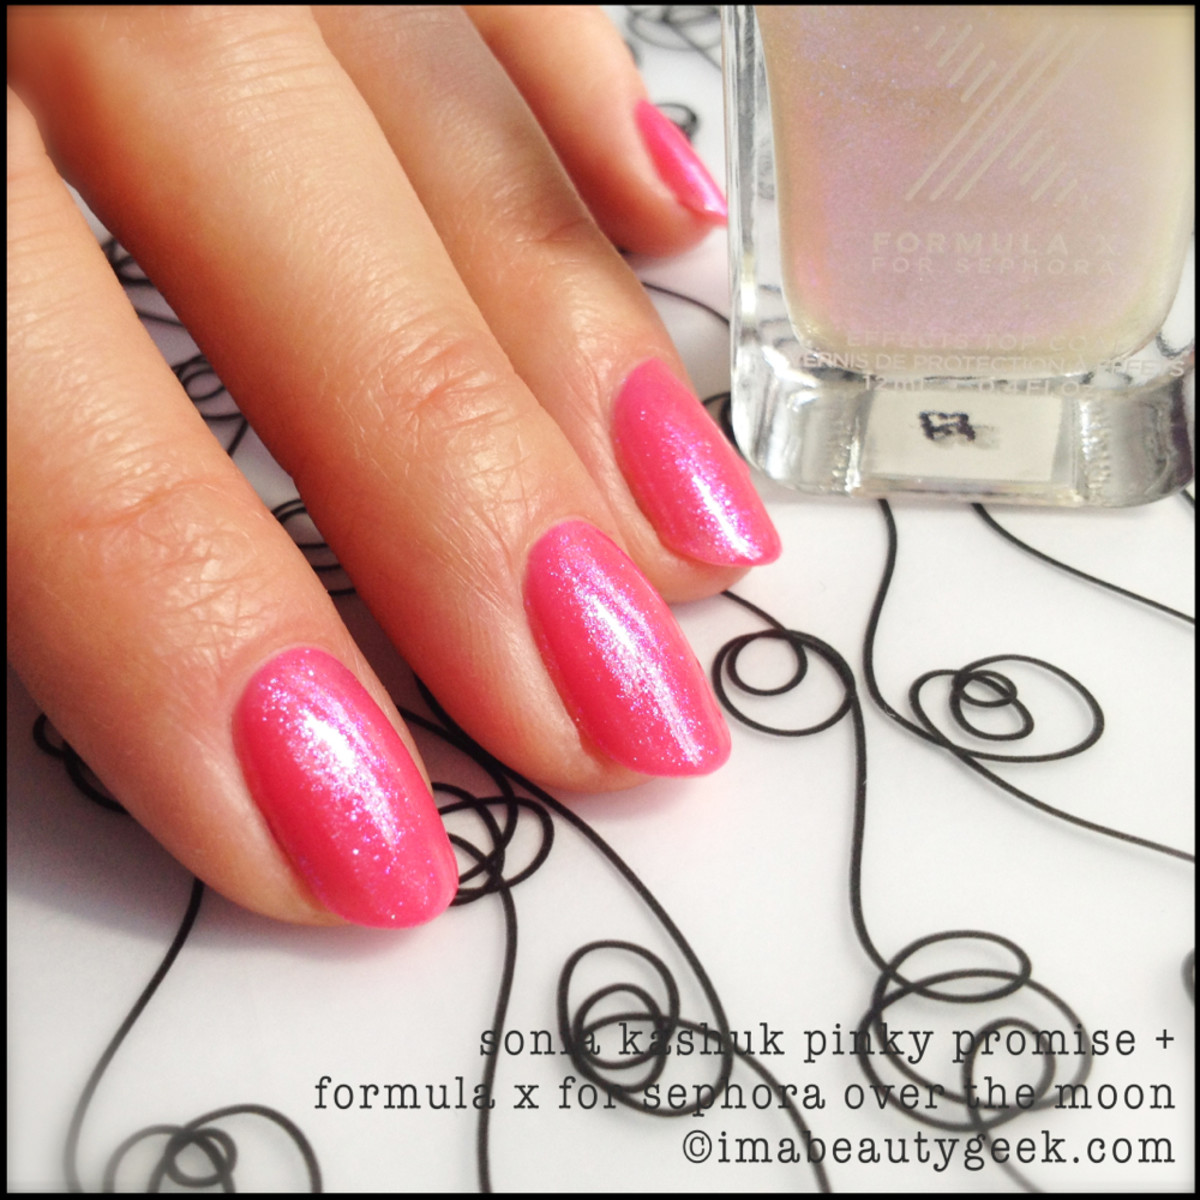 Sonia Kashuk Pinky Promise w Formula X Over the Moon_Sonia Kashuk nail polish Spring 2014